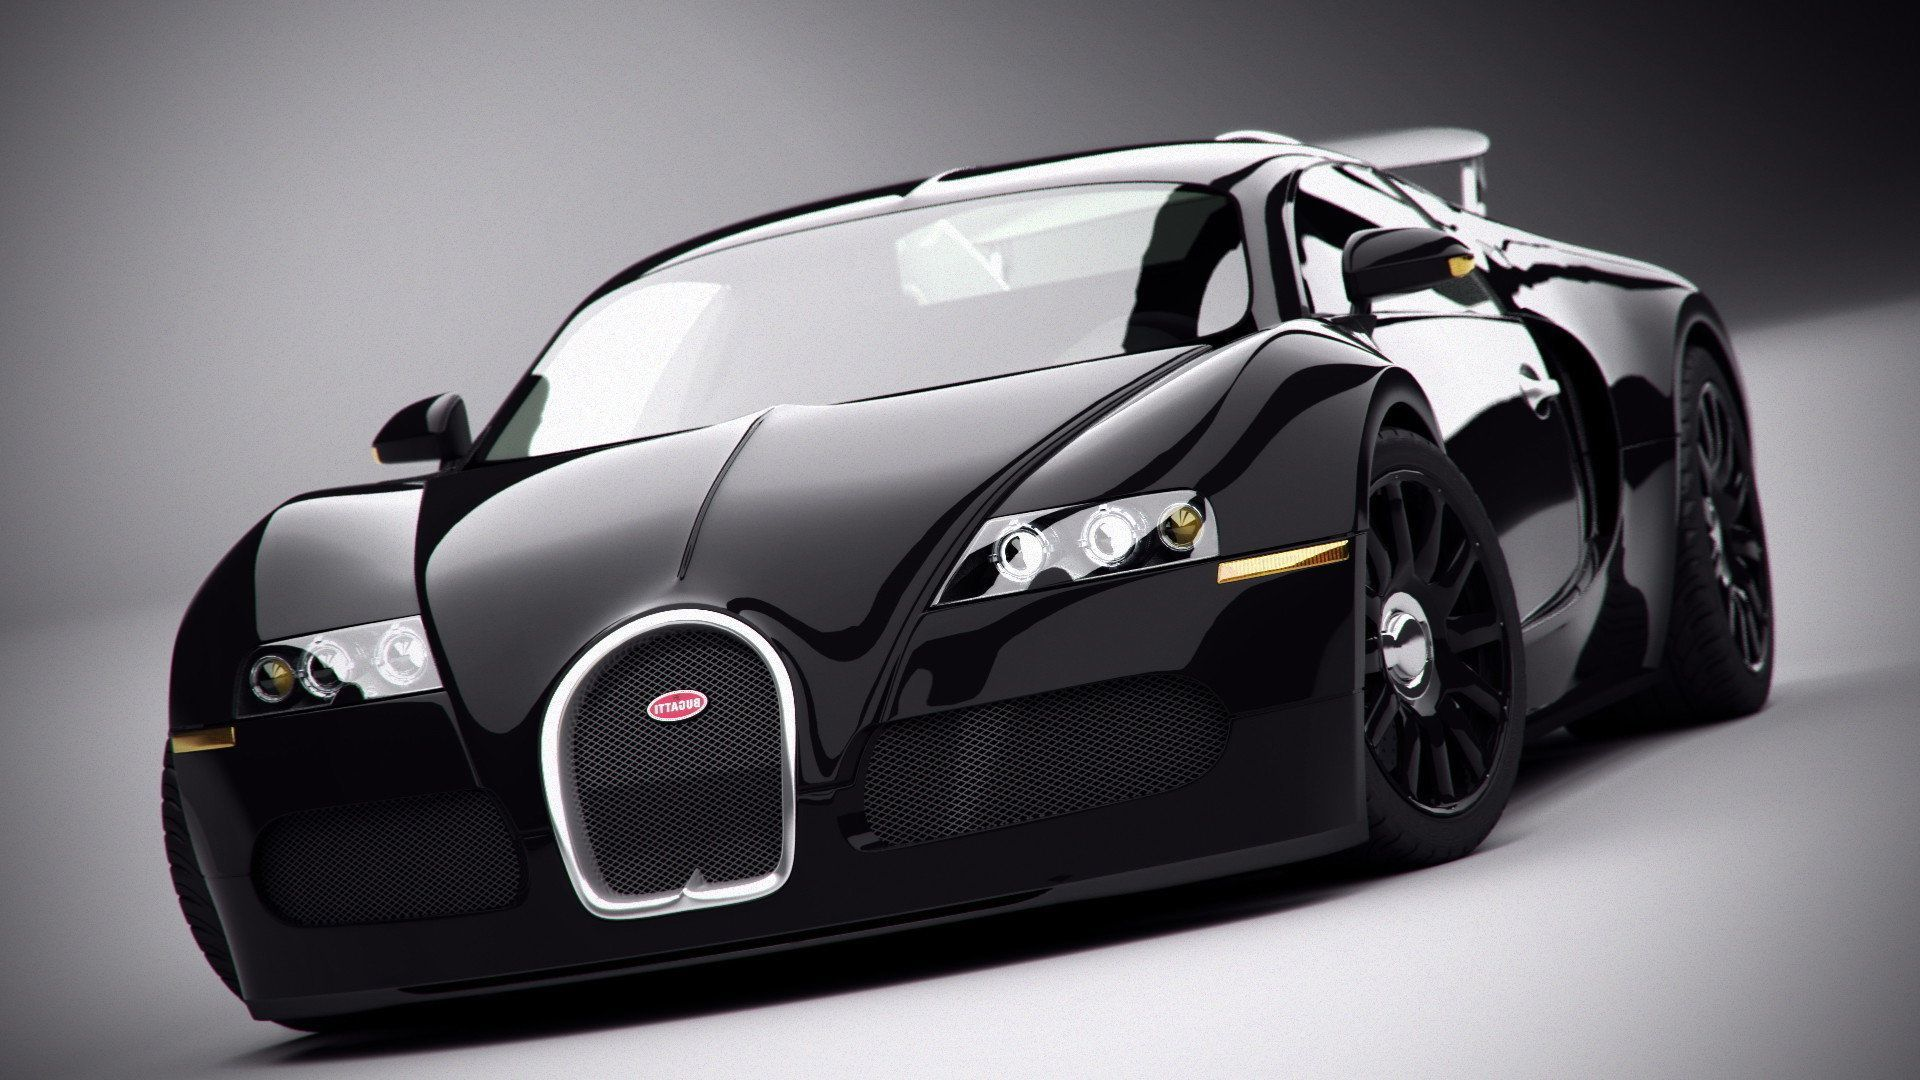 3dc38784717bb400274d8d382df85cd5 Breathtaking Bugatti Veyron Vs Koenigsegg Ccx Cars Trend